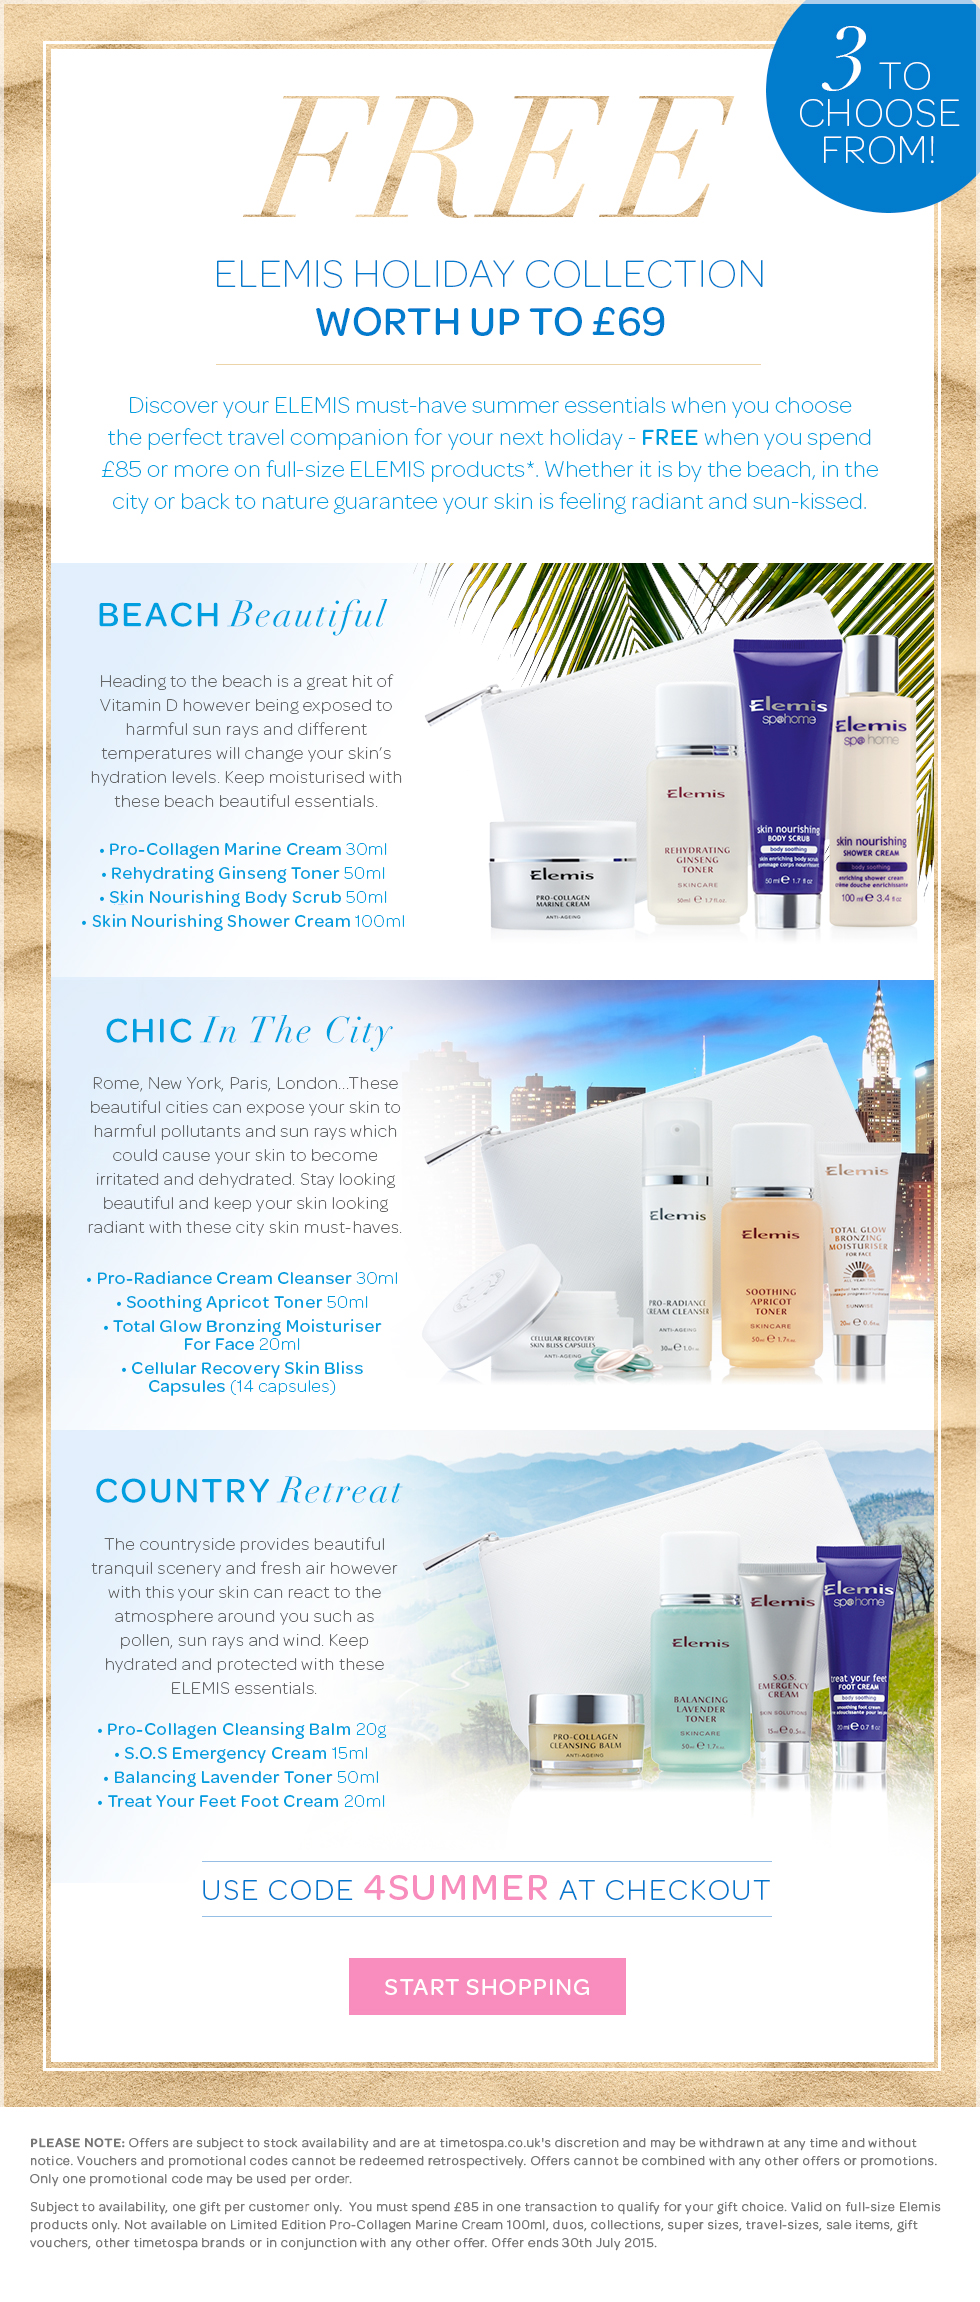 Free ELEMIS Summer Holiday Gift Set Worth Up To £69